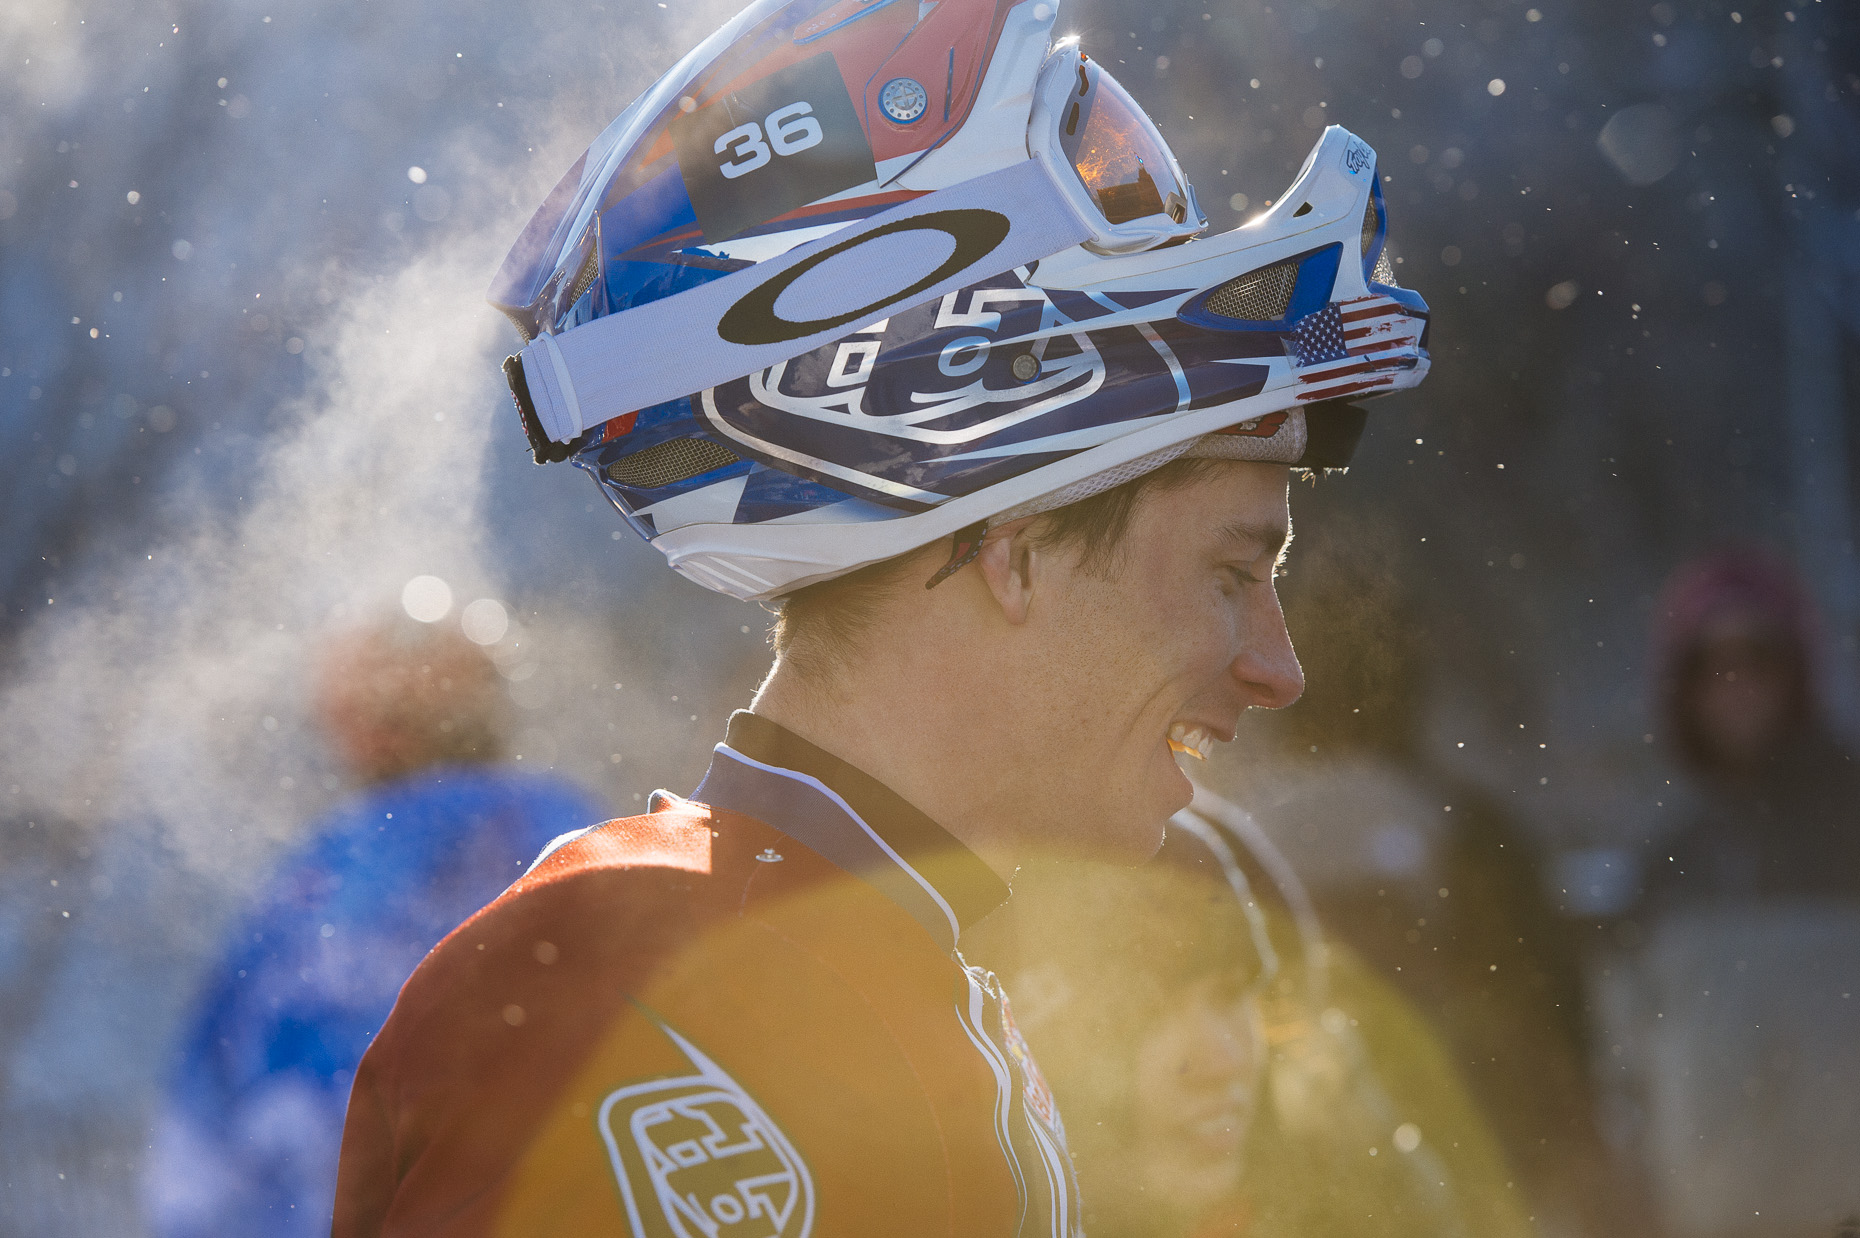 RT_crashedice-stp_2102143022.jpg